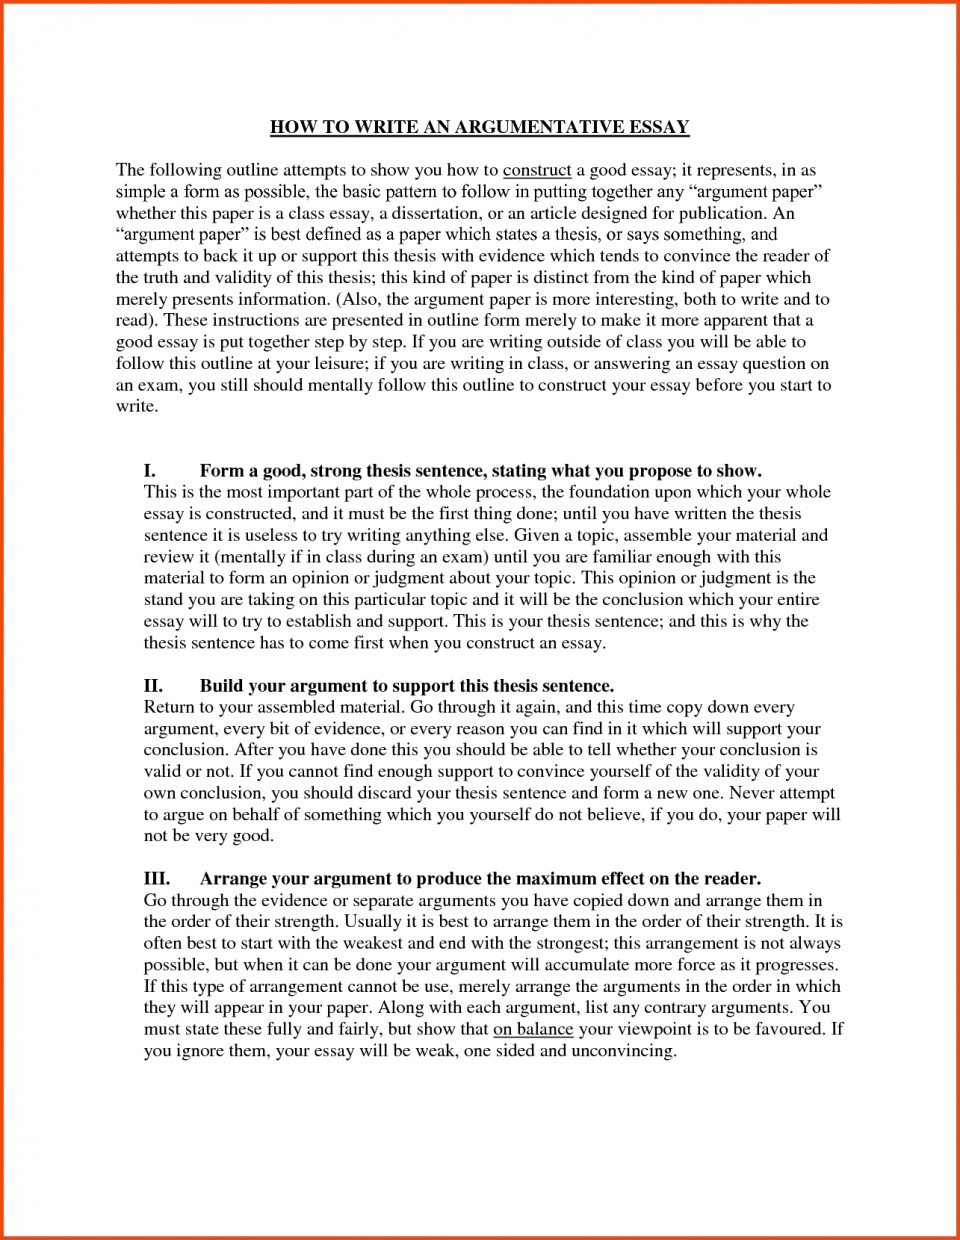 005 Essay Example How To Start An Brilliant Ideas Of Good Ways About Yourself Dissertation Nice Amazing A Definition Begin With Hook Dictionary 960